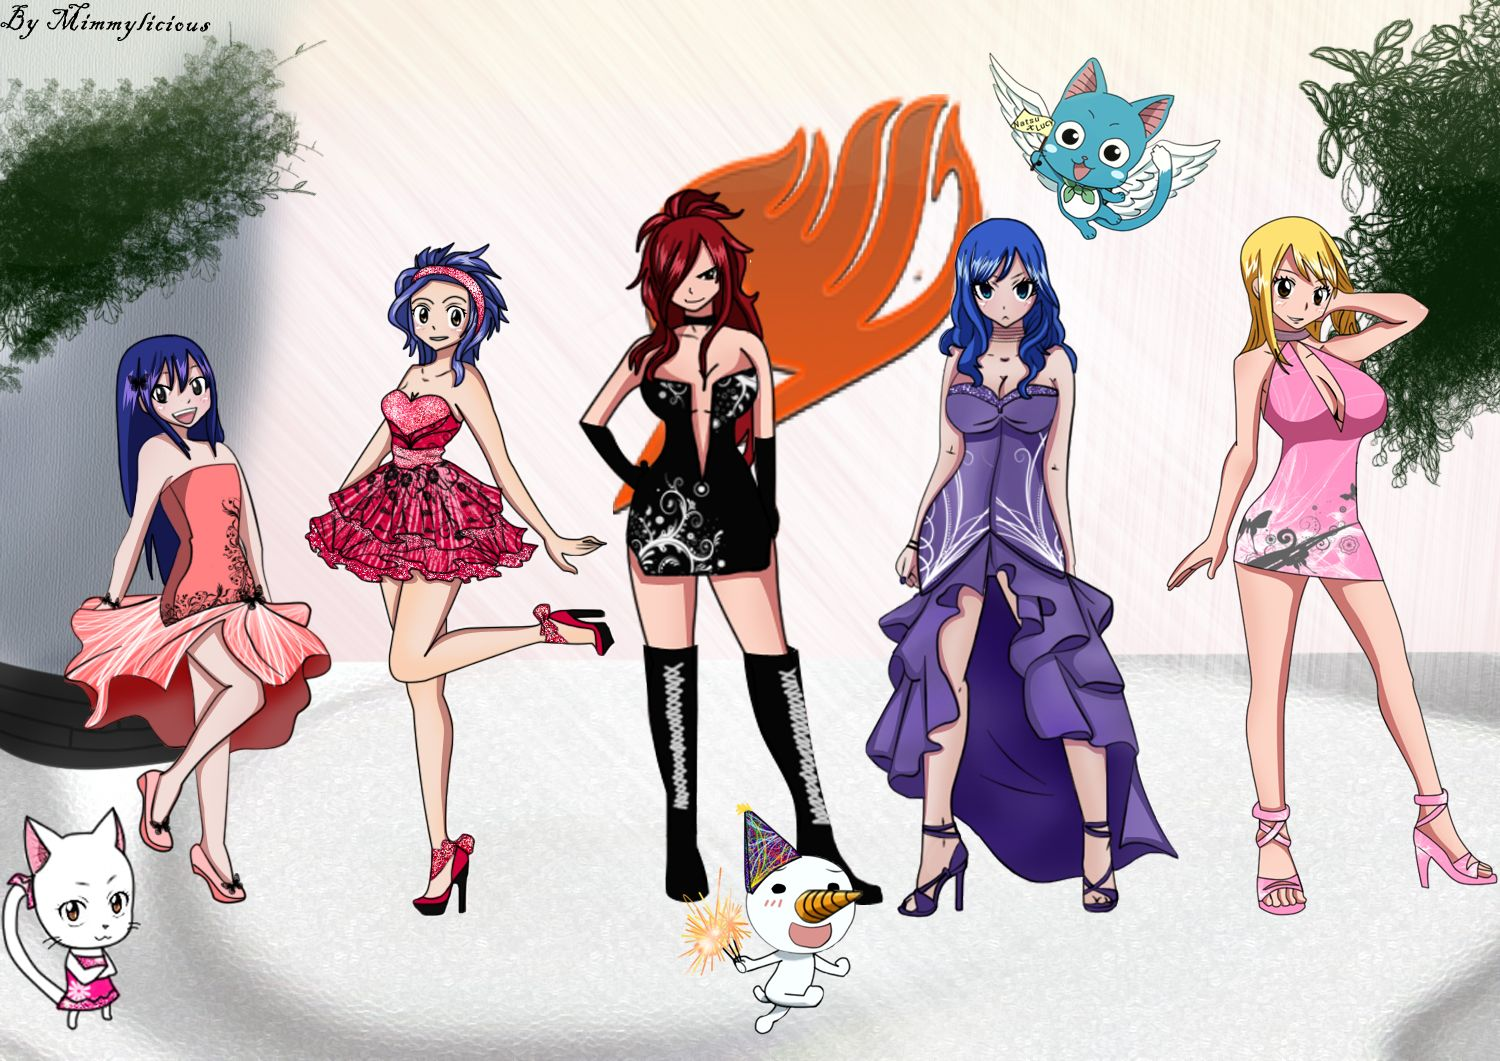 Fairy Tail Girls Party By Mimmylicious Dpqloq Your Hd Wallpaper